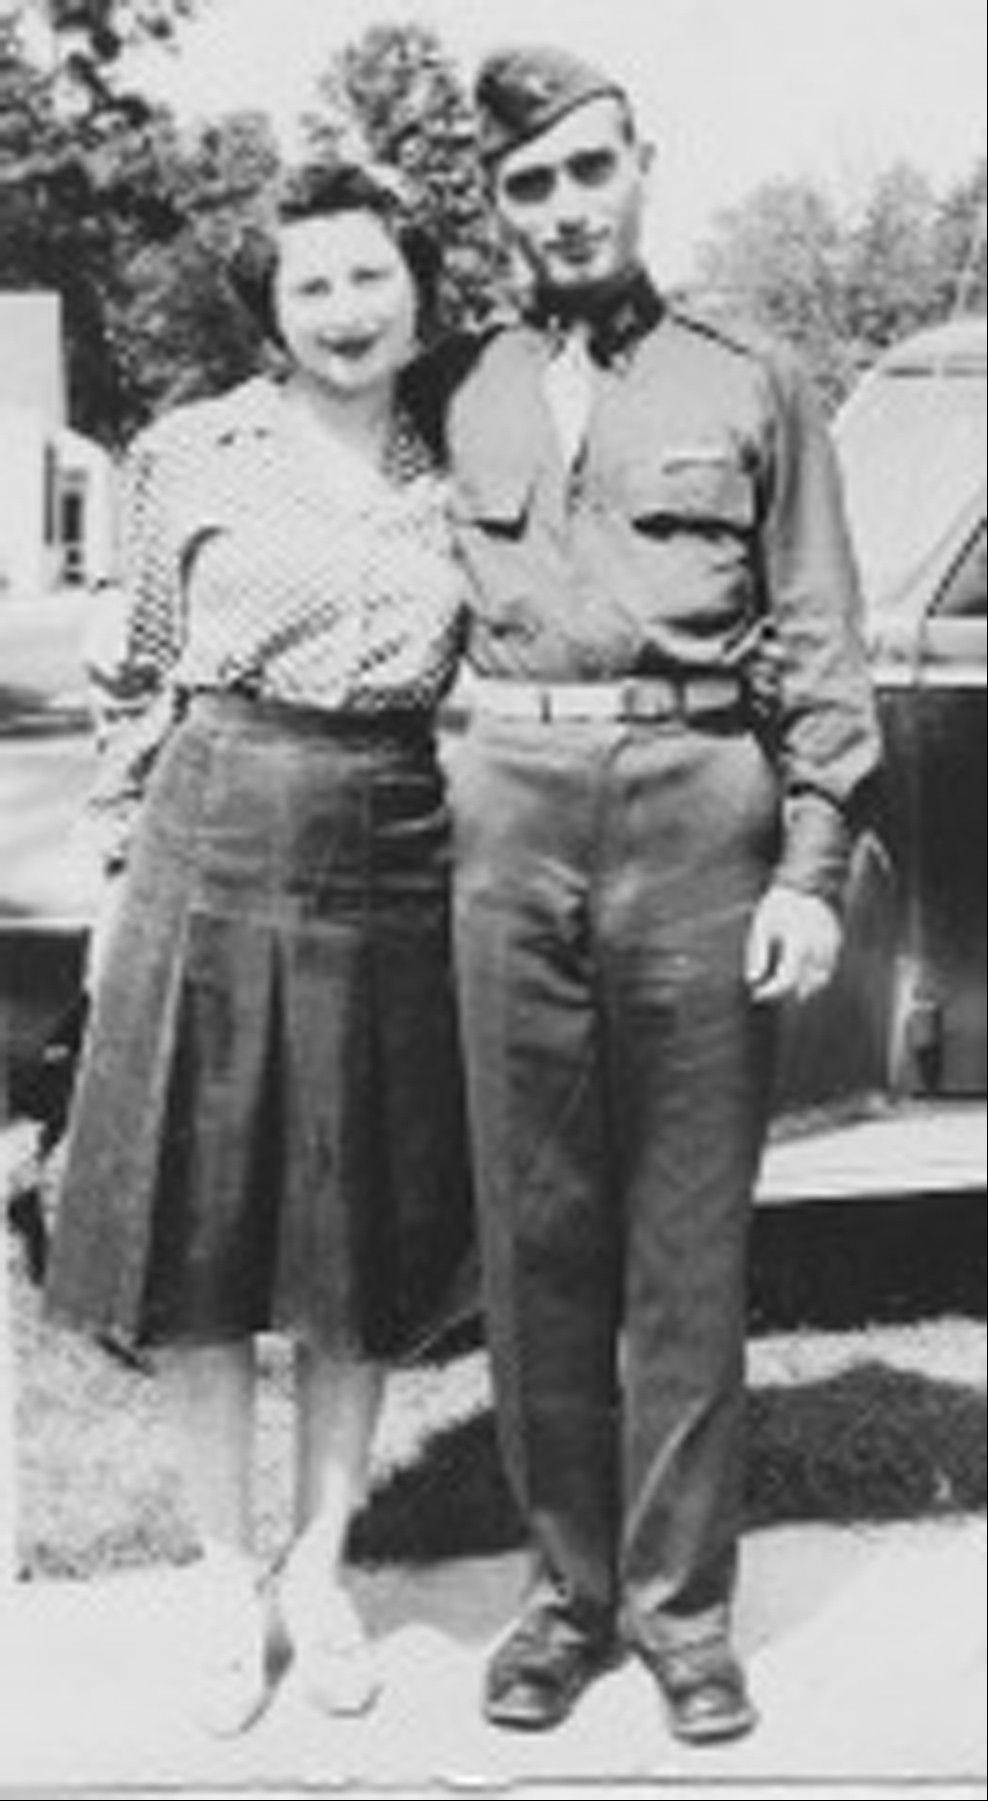 This undated image provided by Hyla Merin shows 2nd Lt. Hyman Markel with his bride, Celia Markel. Markel was a rabbi�s son, brilliant at mathematics, the brave winner of a Purple Heart who died in 1945. Markel was killed on May 3, 1945, in Italy�s Po Valley while fighting German troops as an officer with the 88th Division of the 351st Infantry Regiment.